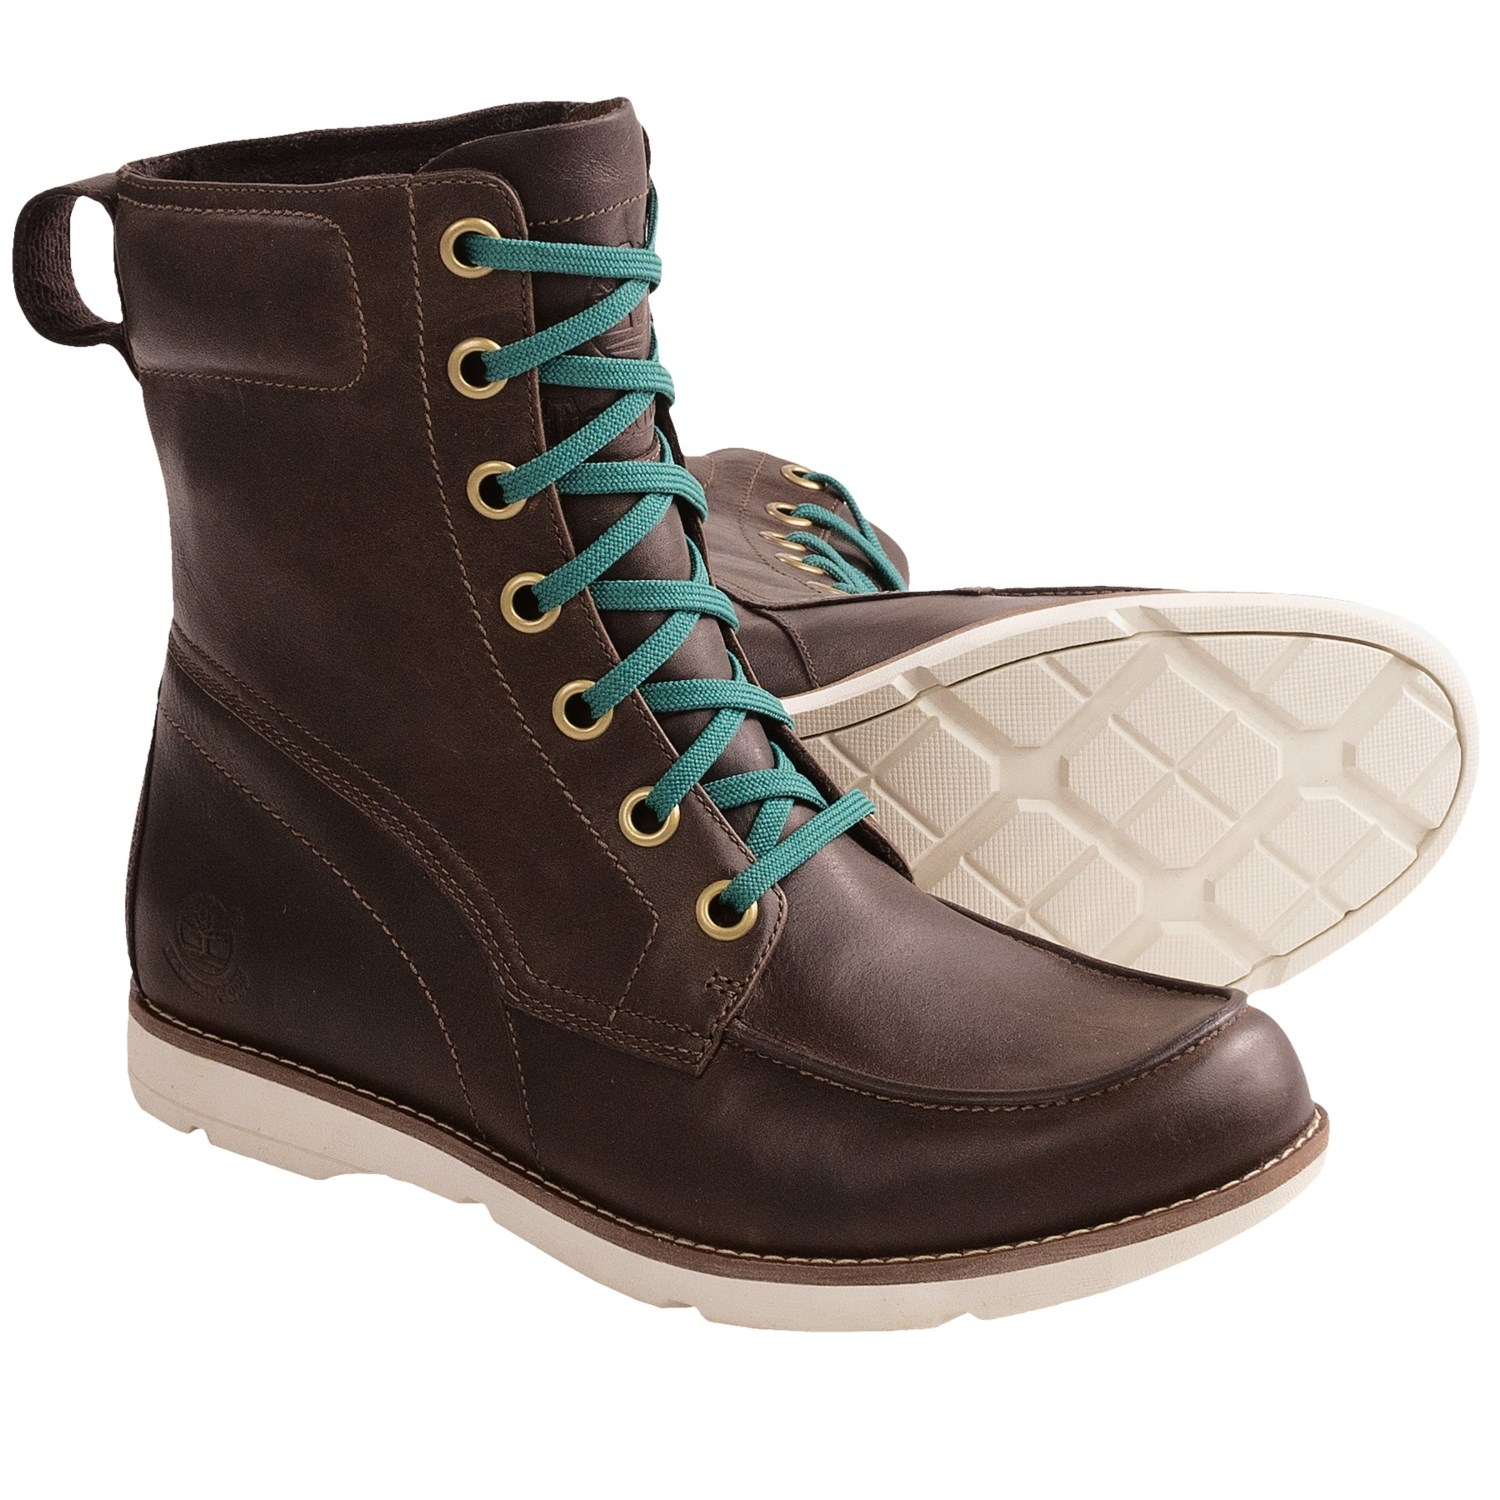 dwkh6fhd discount timberland earthkeepers boots for